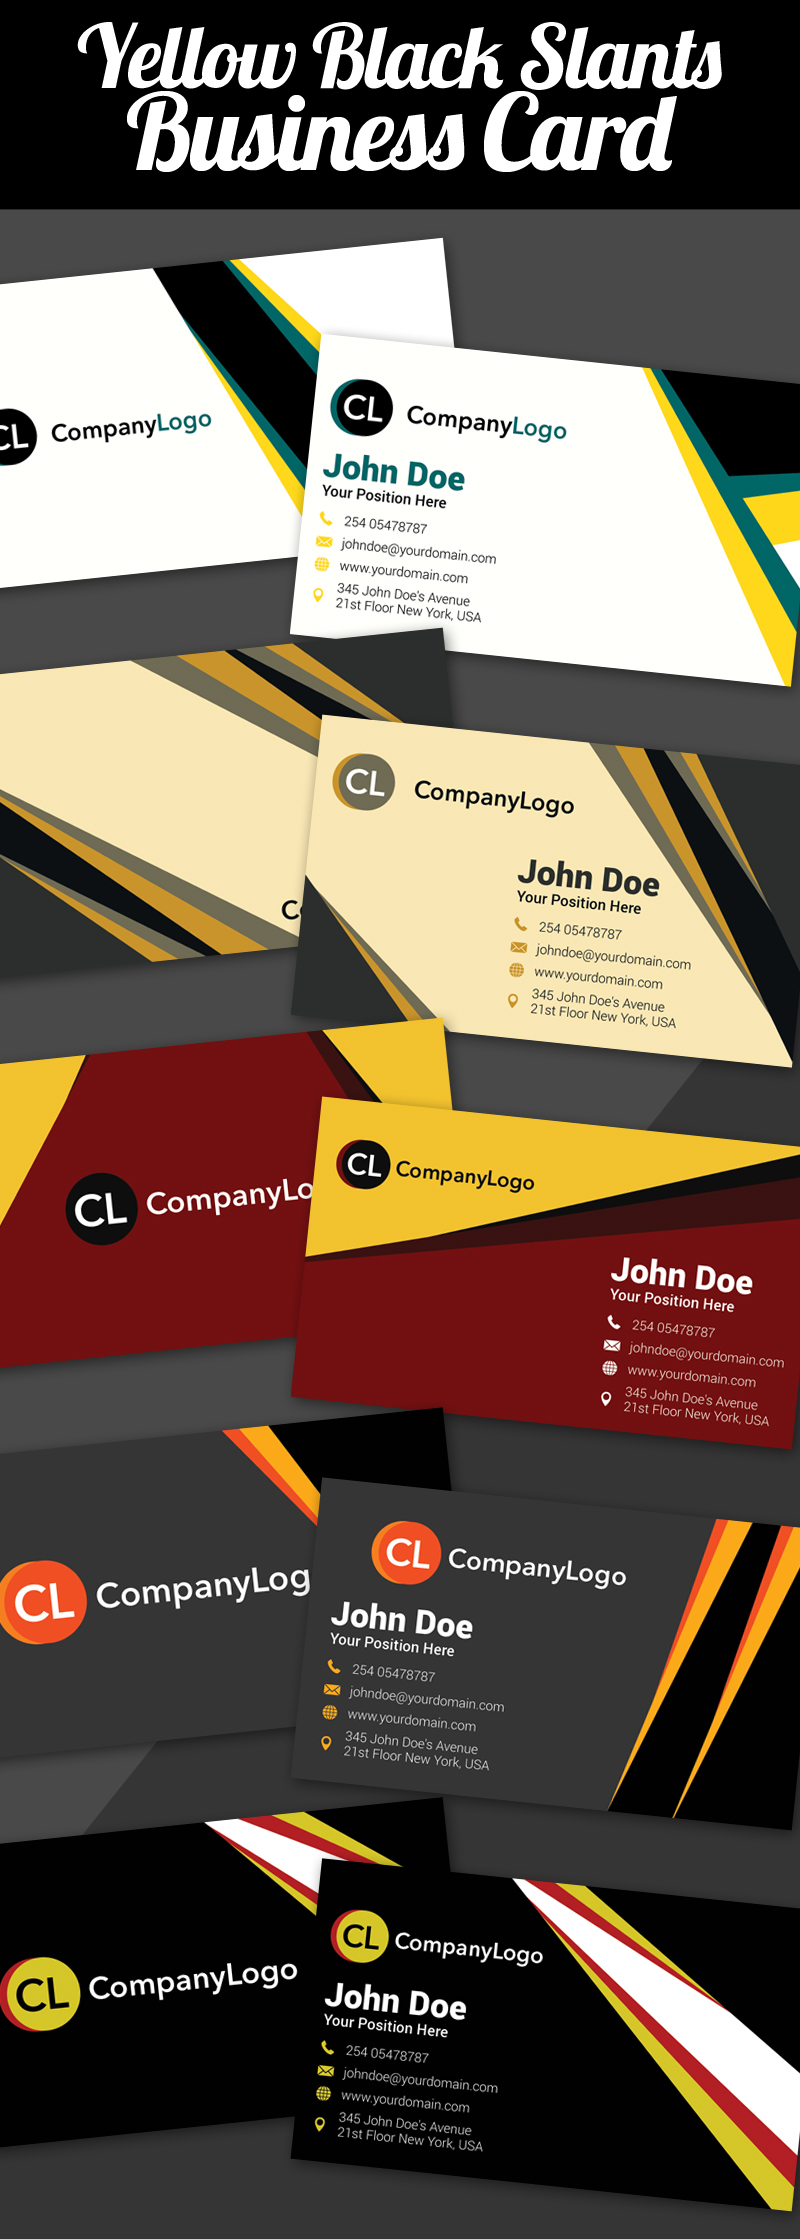 Yellow Black Slants Business Cards